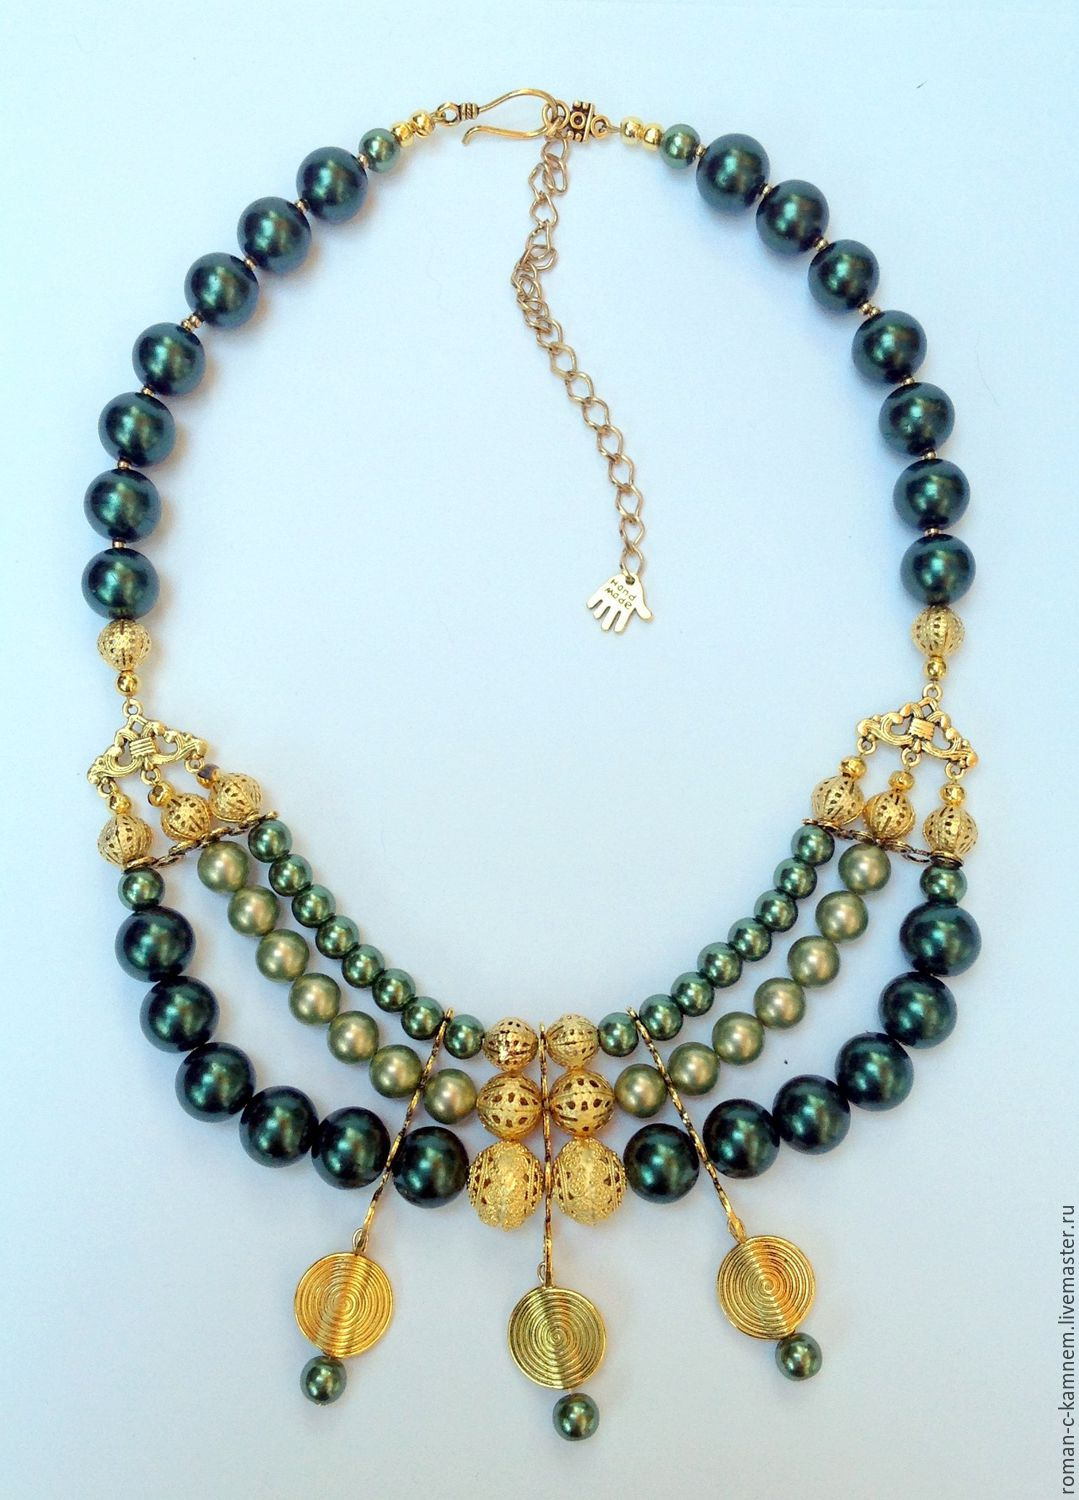 Multi-row pearl necklace in Oriental style Golden olive.Perfectly accentuate cleavage and complement the dress with bare shoulders.